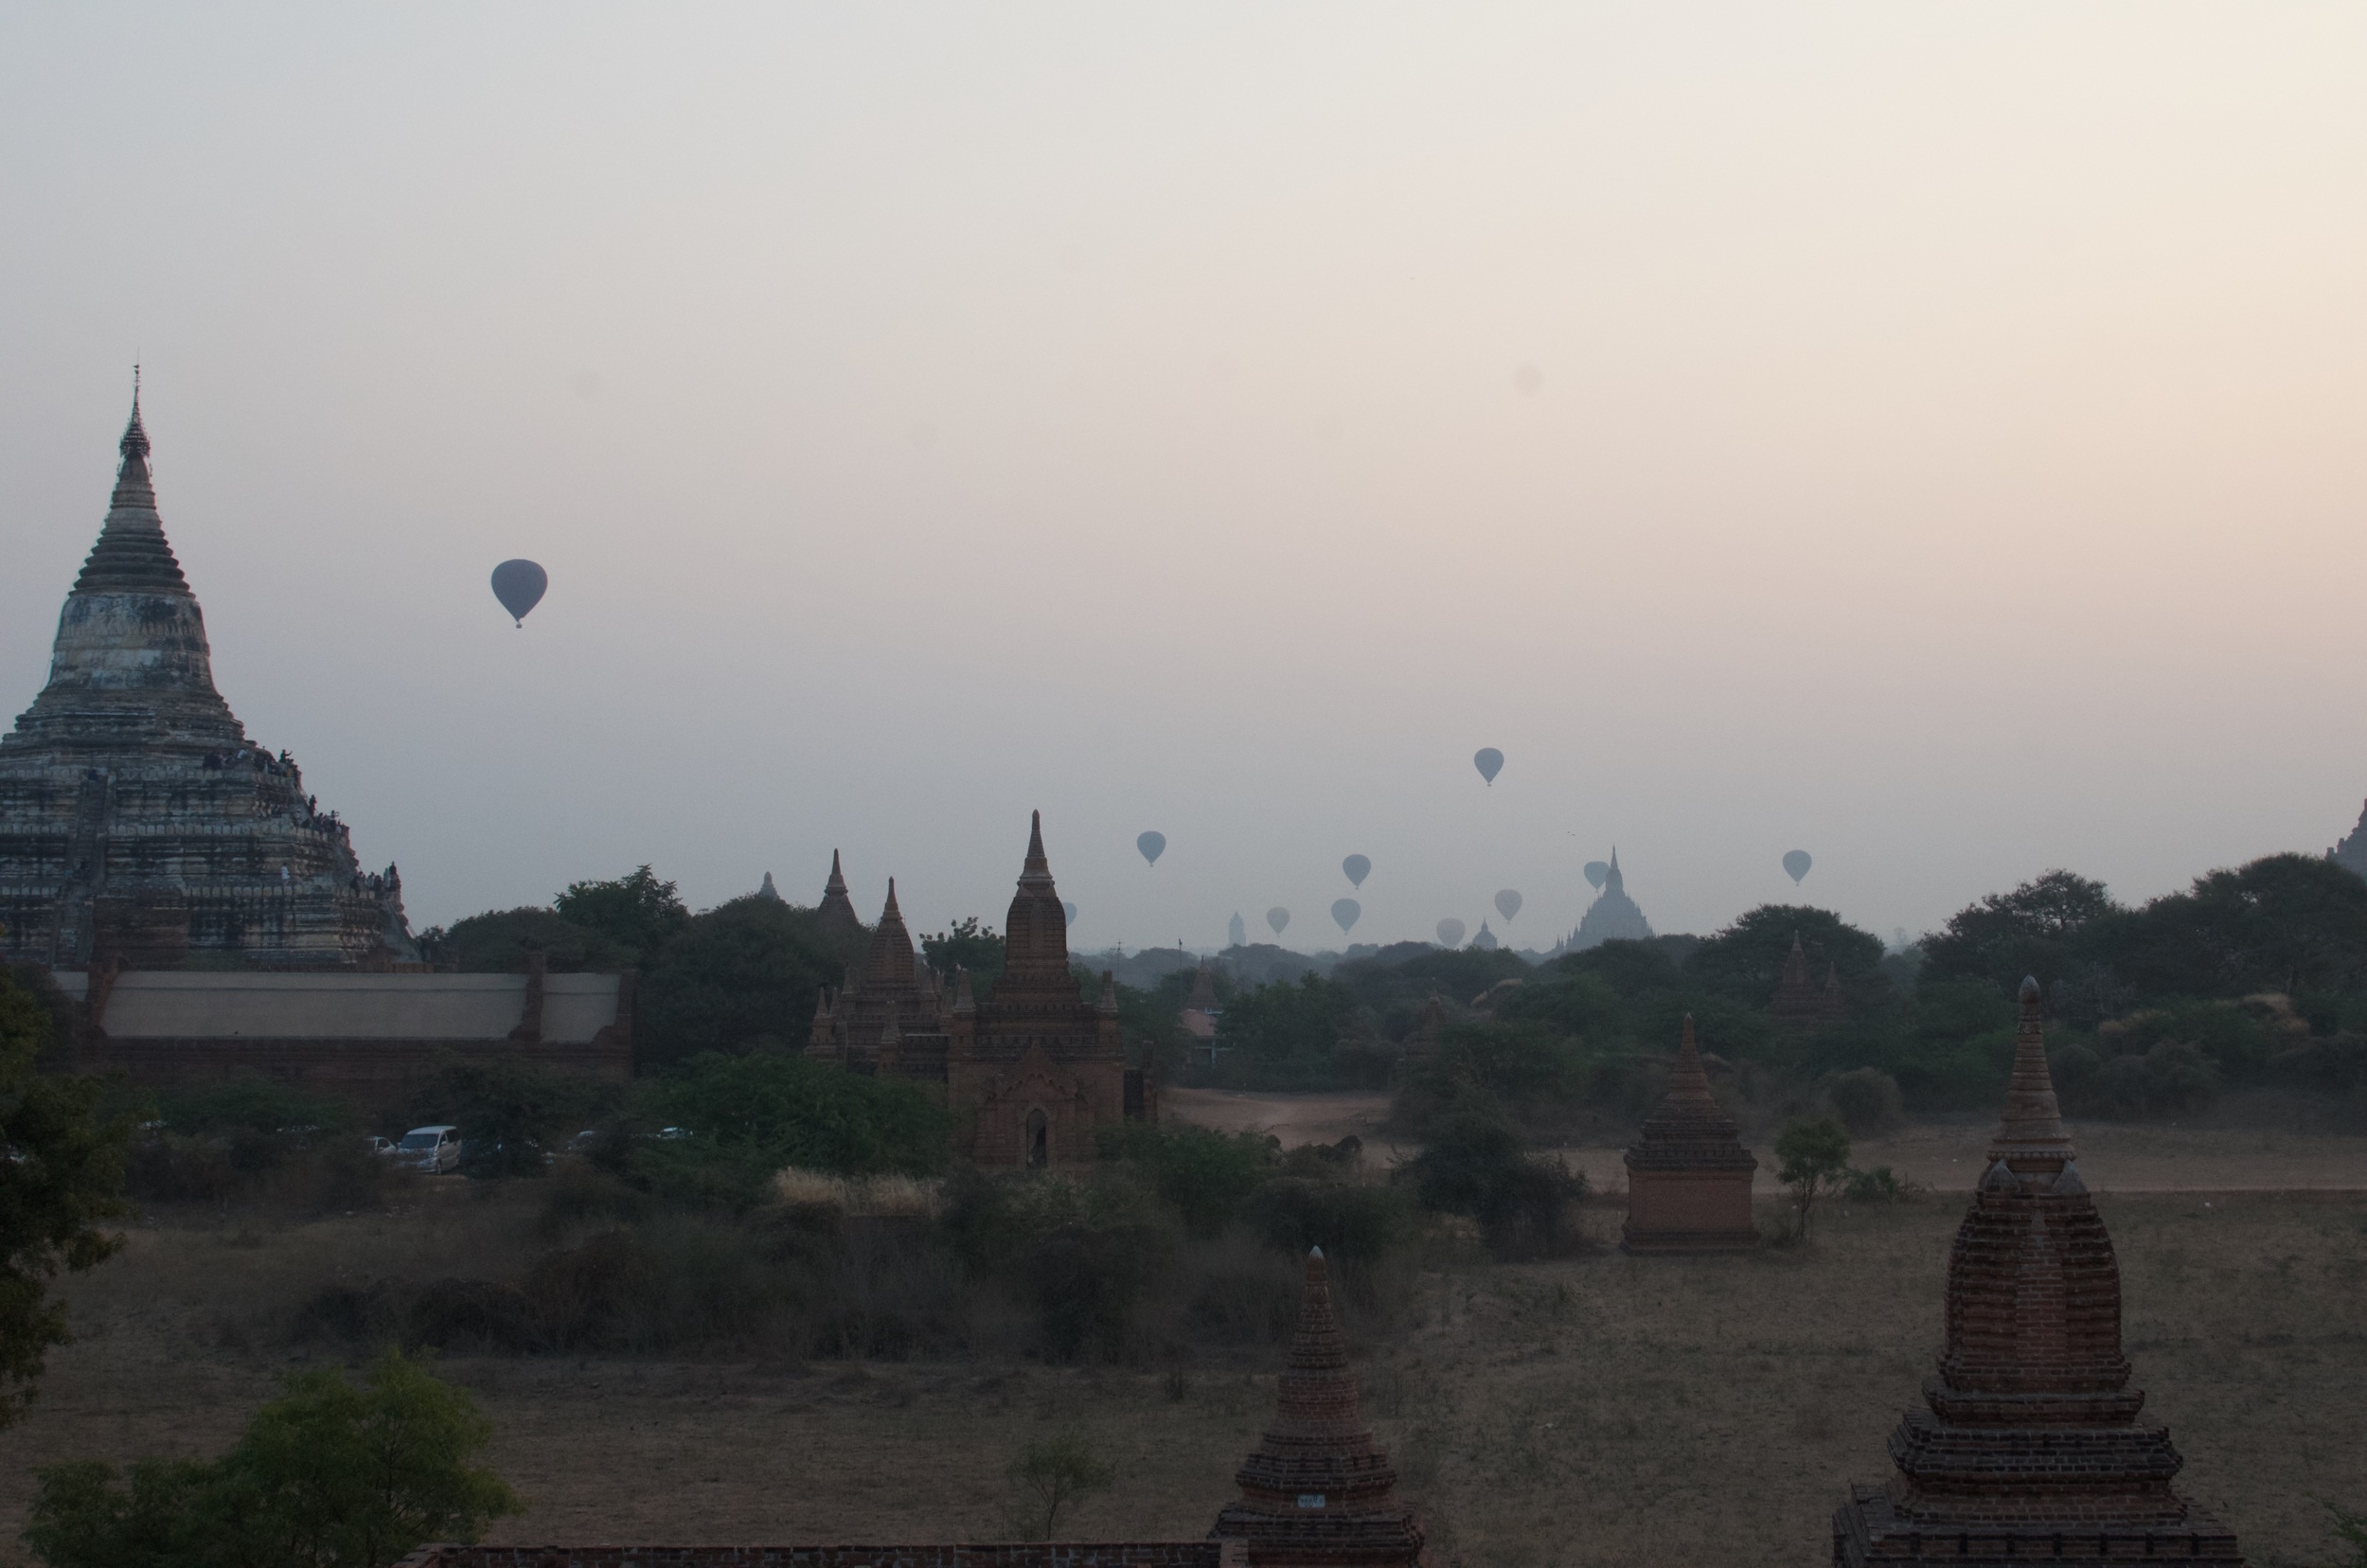 You can pay to ride a balloon over Bagan at sunset. Whilst you can't beat the view, you might not fully enjoy it due to the vomit in your mouth after paying $400 per person for the privilege.